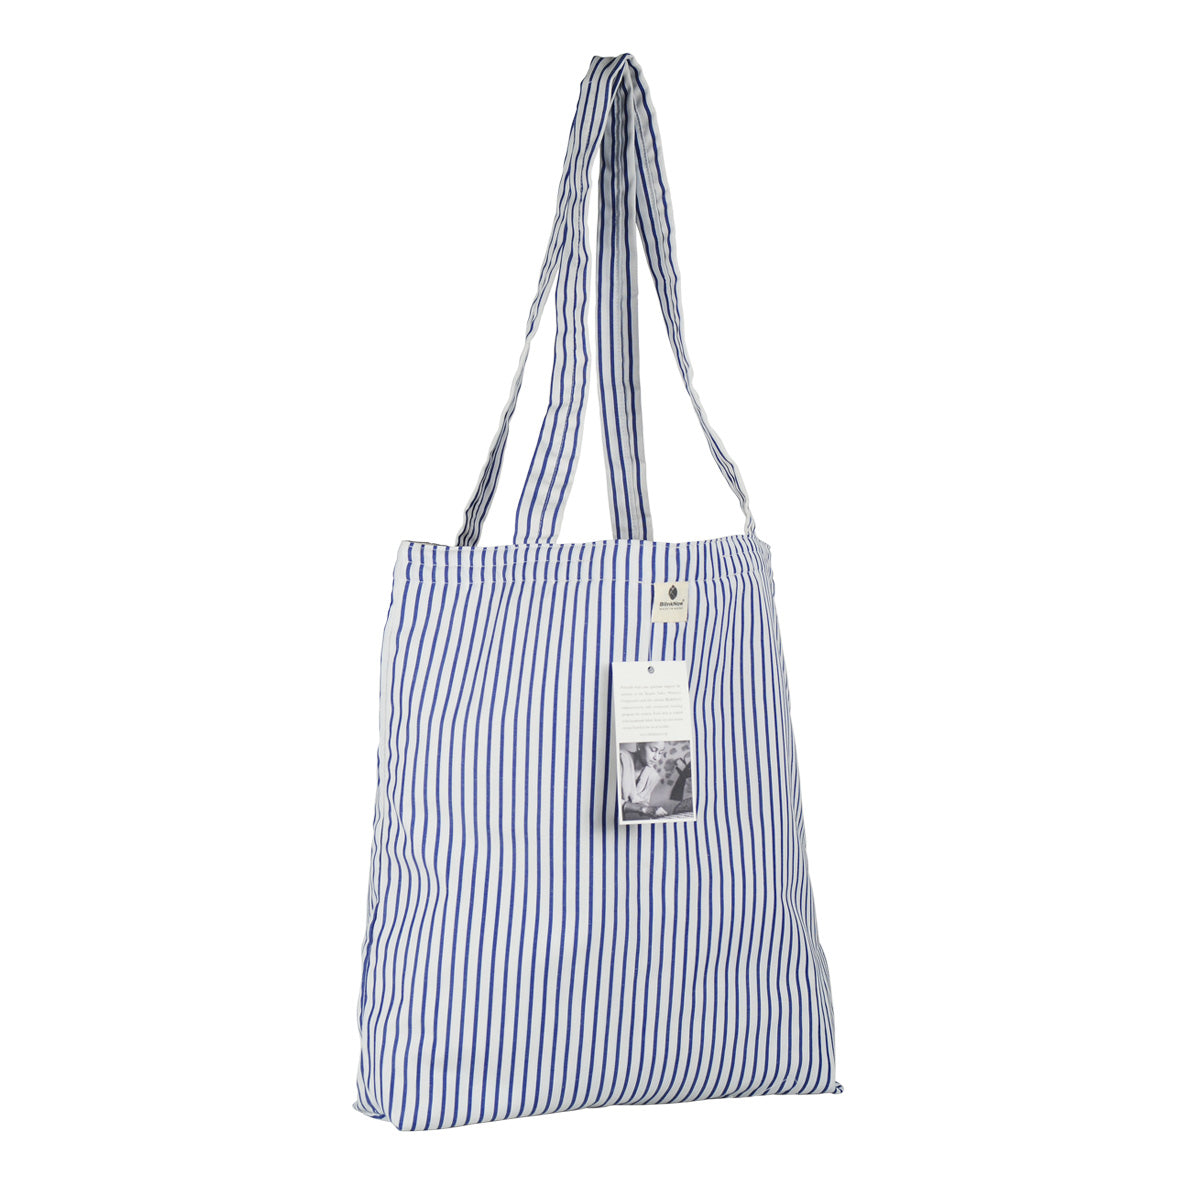 Kopila Valley Women's Cooperative Striped Cotton Tote Bag